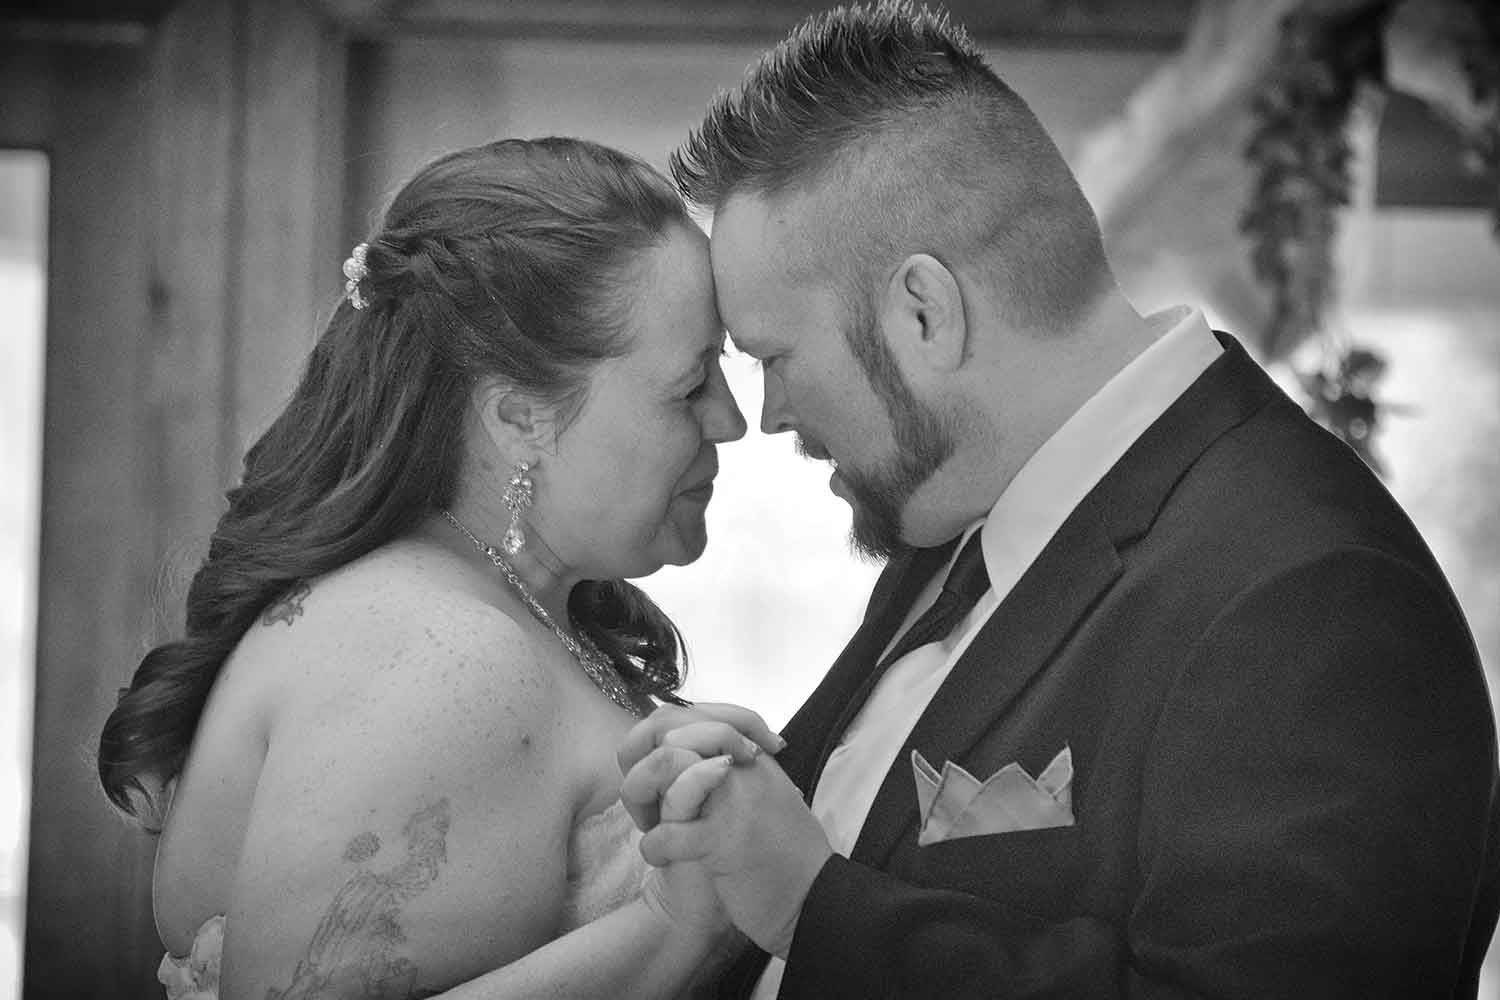 Melissa Lanasa and Darrell Adam Stallings married at Cove Lake Community Center on April 9, 2016. photos by Brianna Bivens - 2016